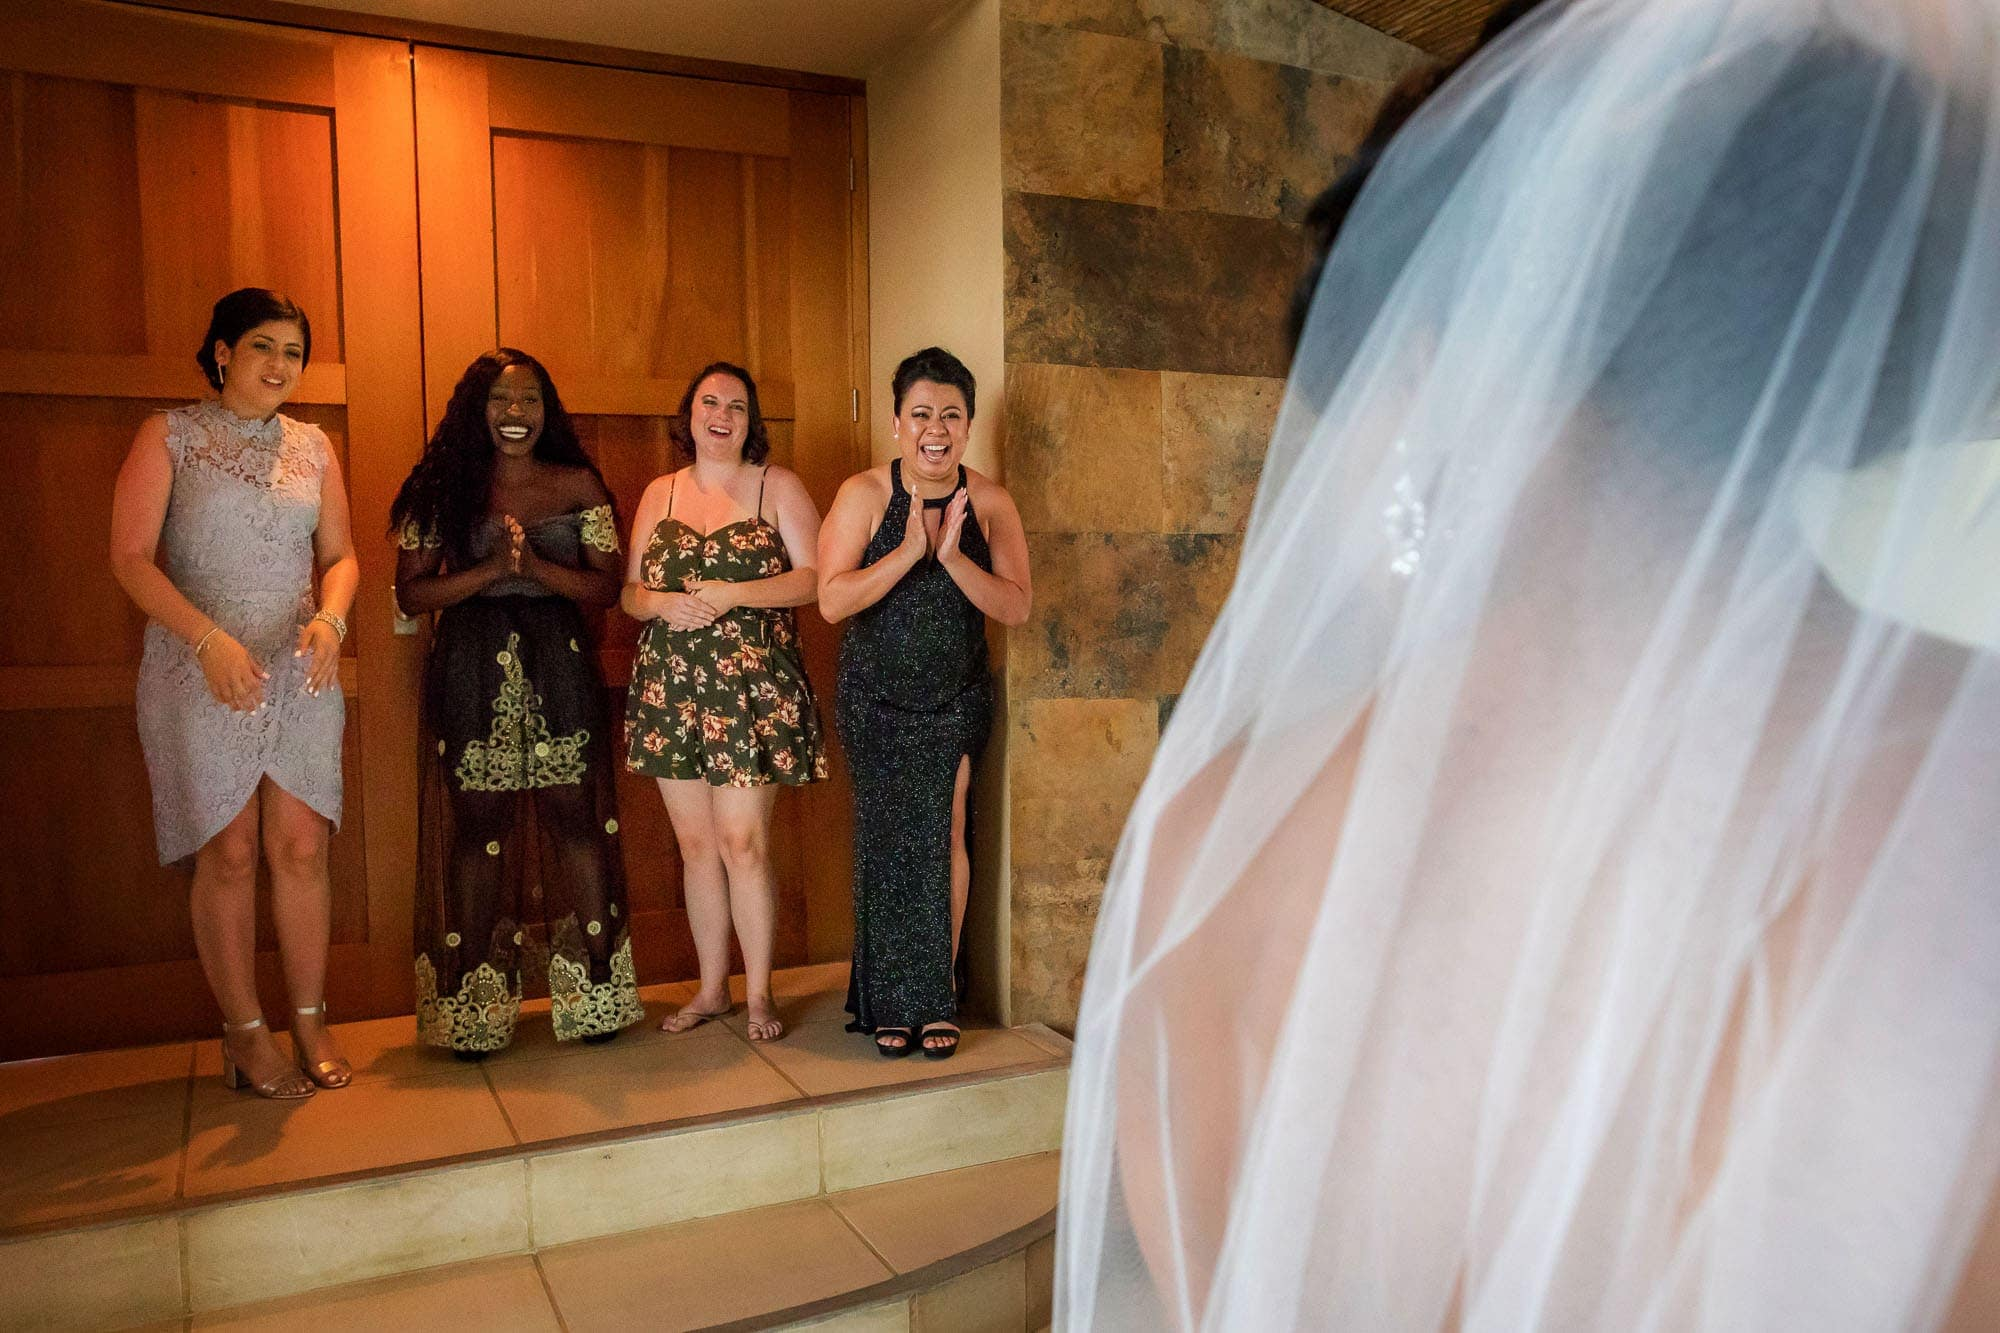 The bride's friends are delighted by her appearance